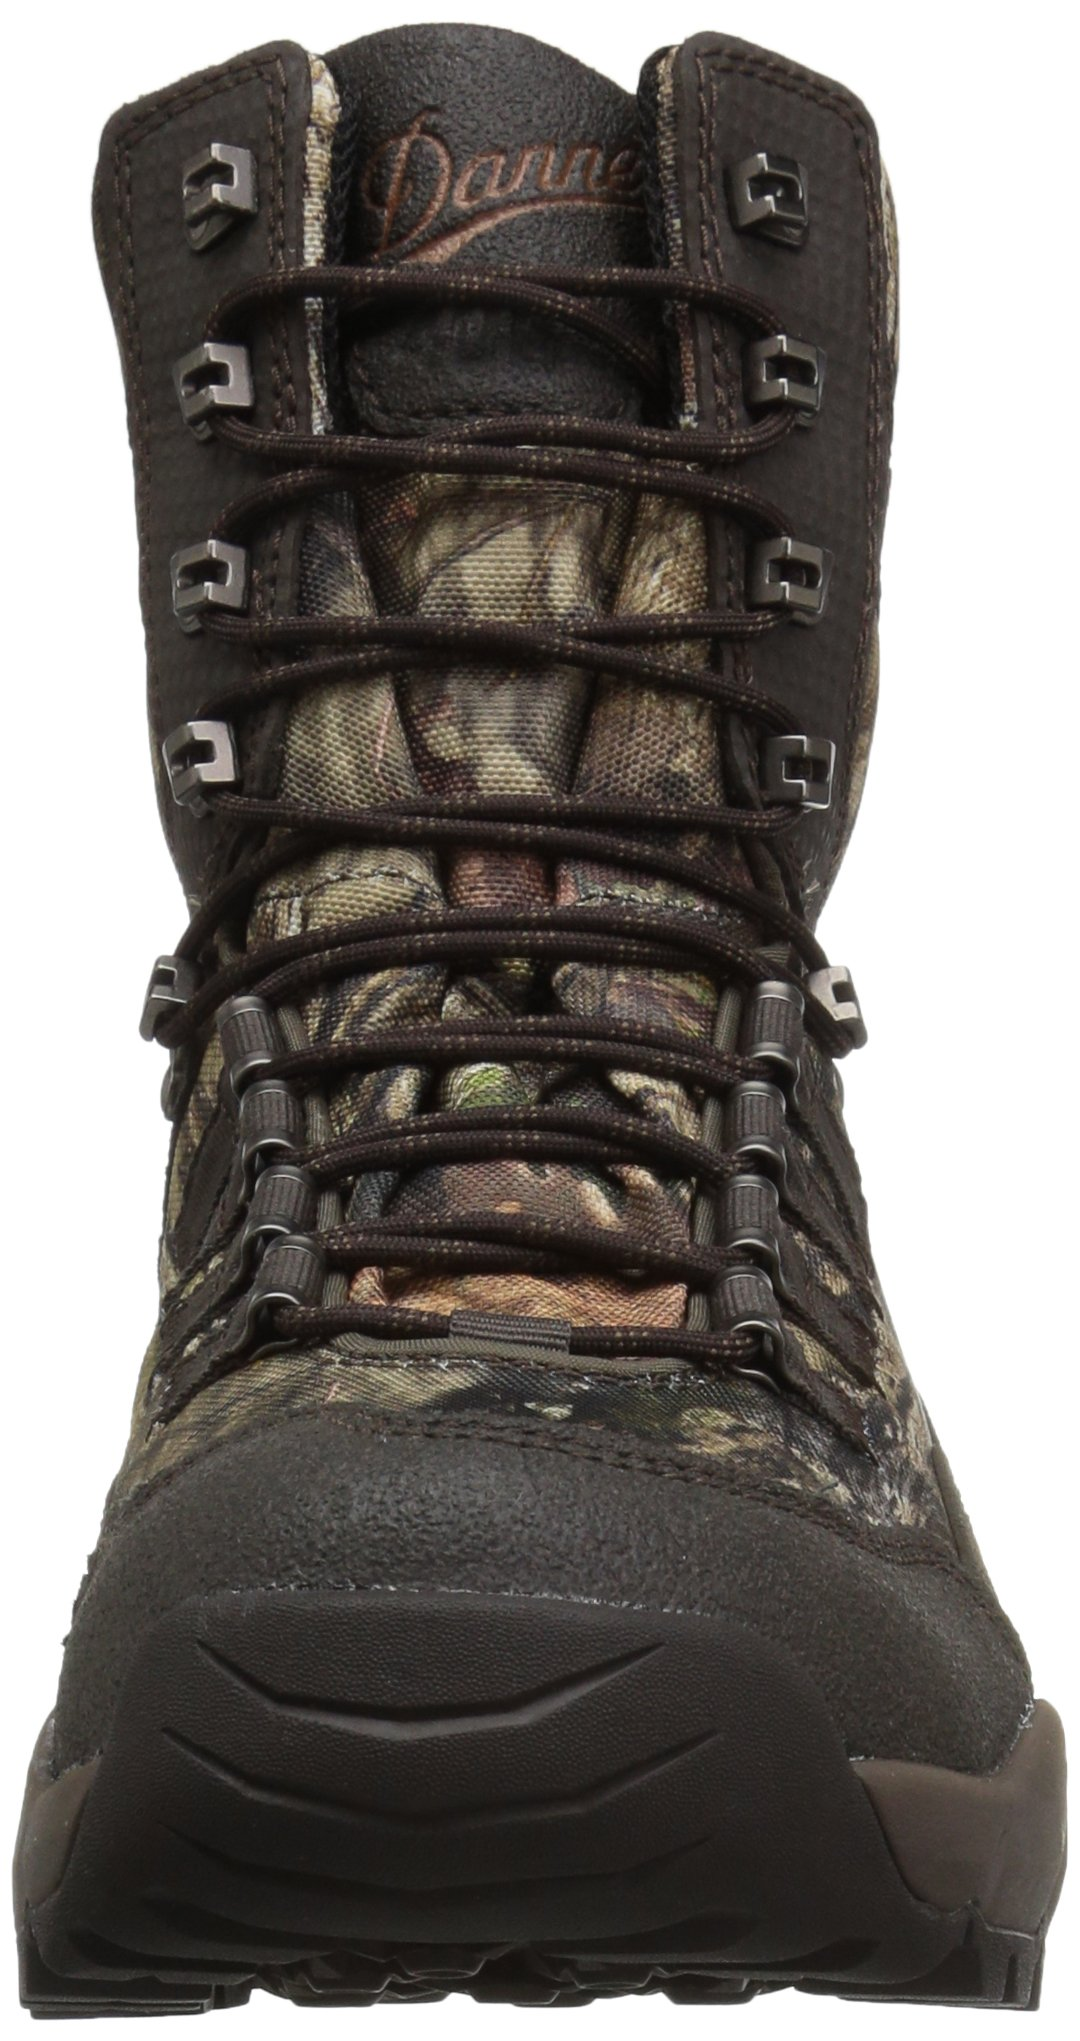 Danner Men's Vital Insulated 400G Hunting Shoes, Mossy Oak Break Up Country, 8.5 D US by Danner (Image #4)